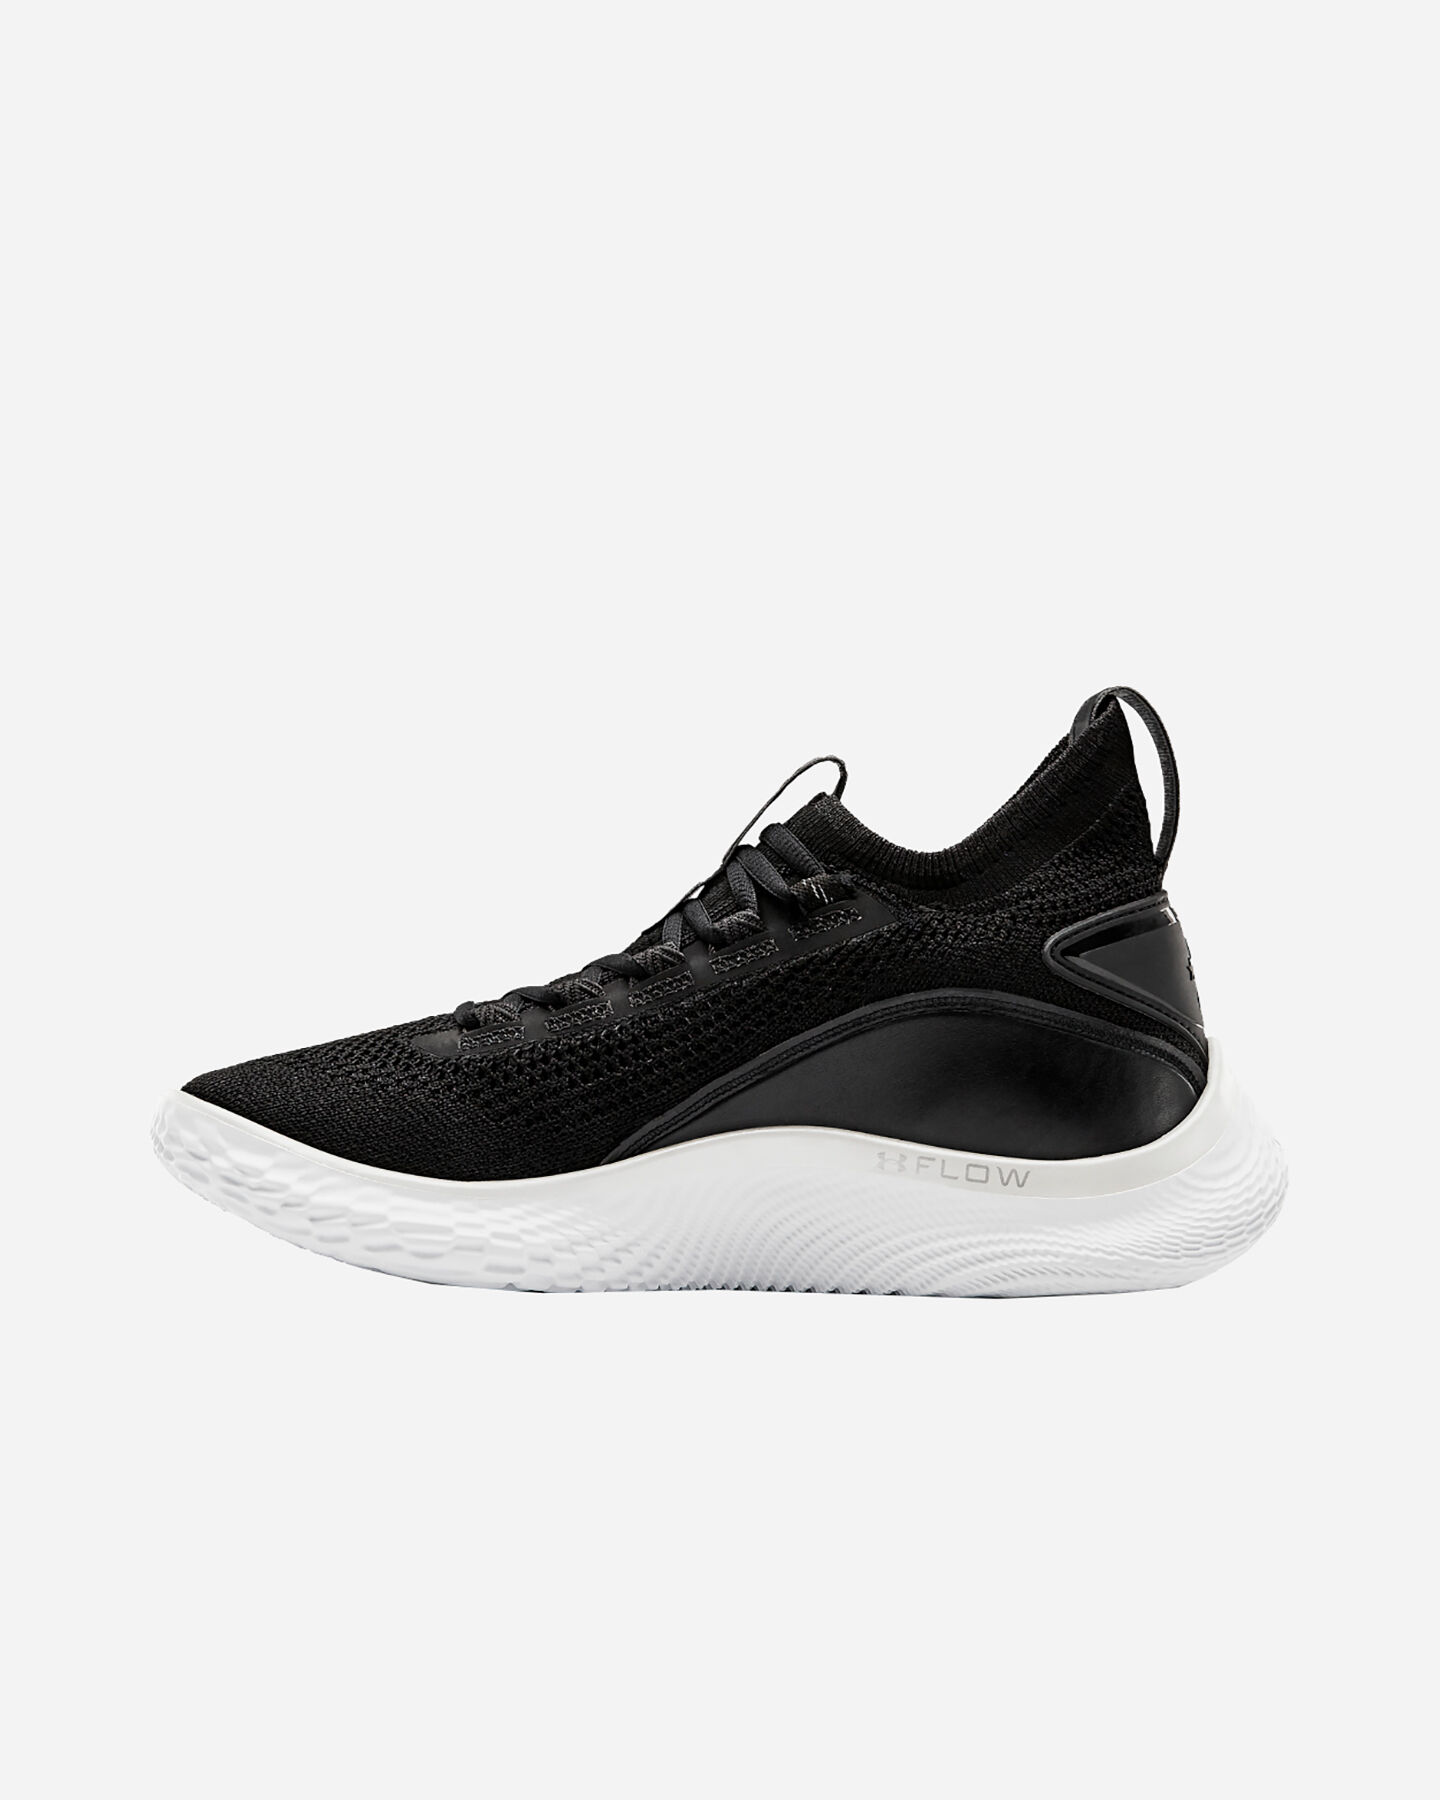 Scarpe basket UNDER ARMOUR CURRY 8 M S5230331 scatto 4